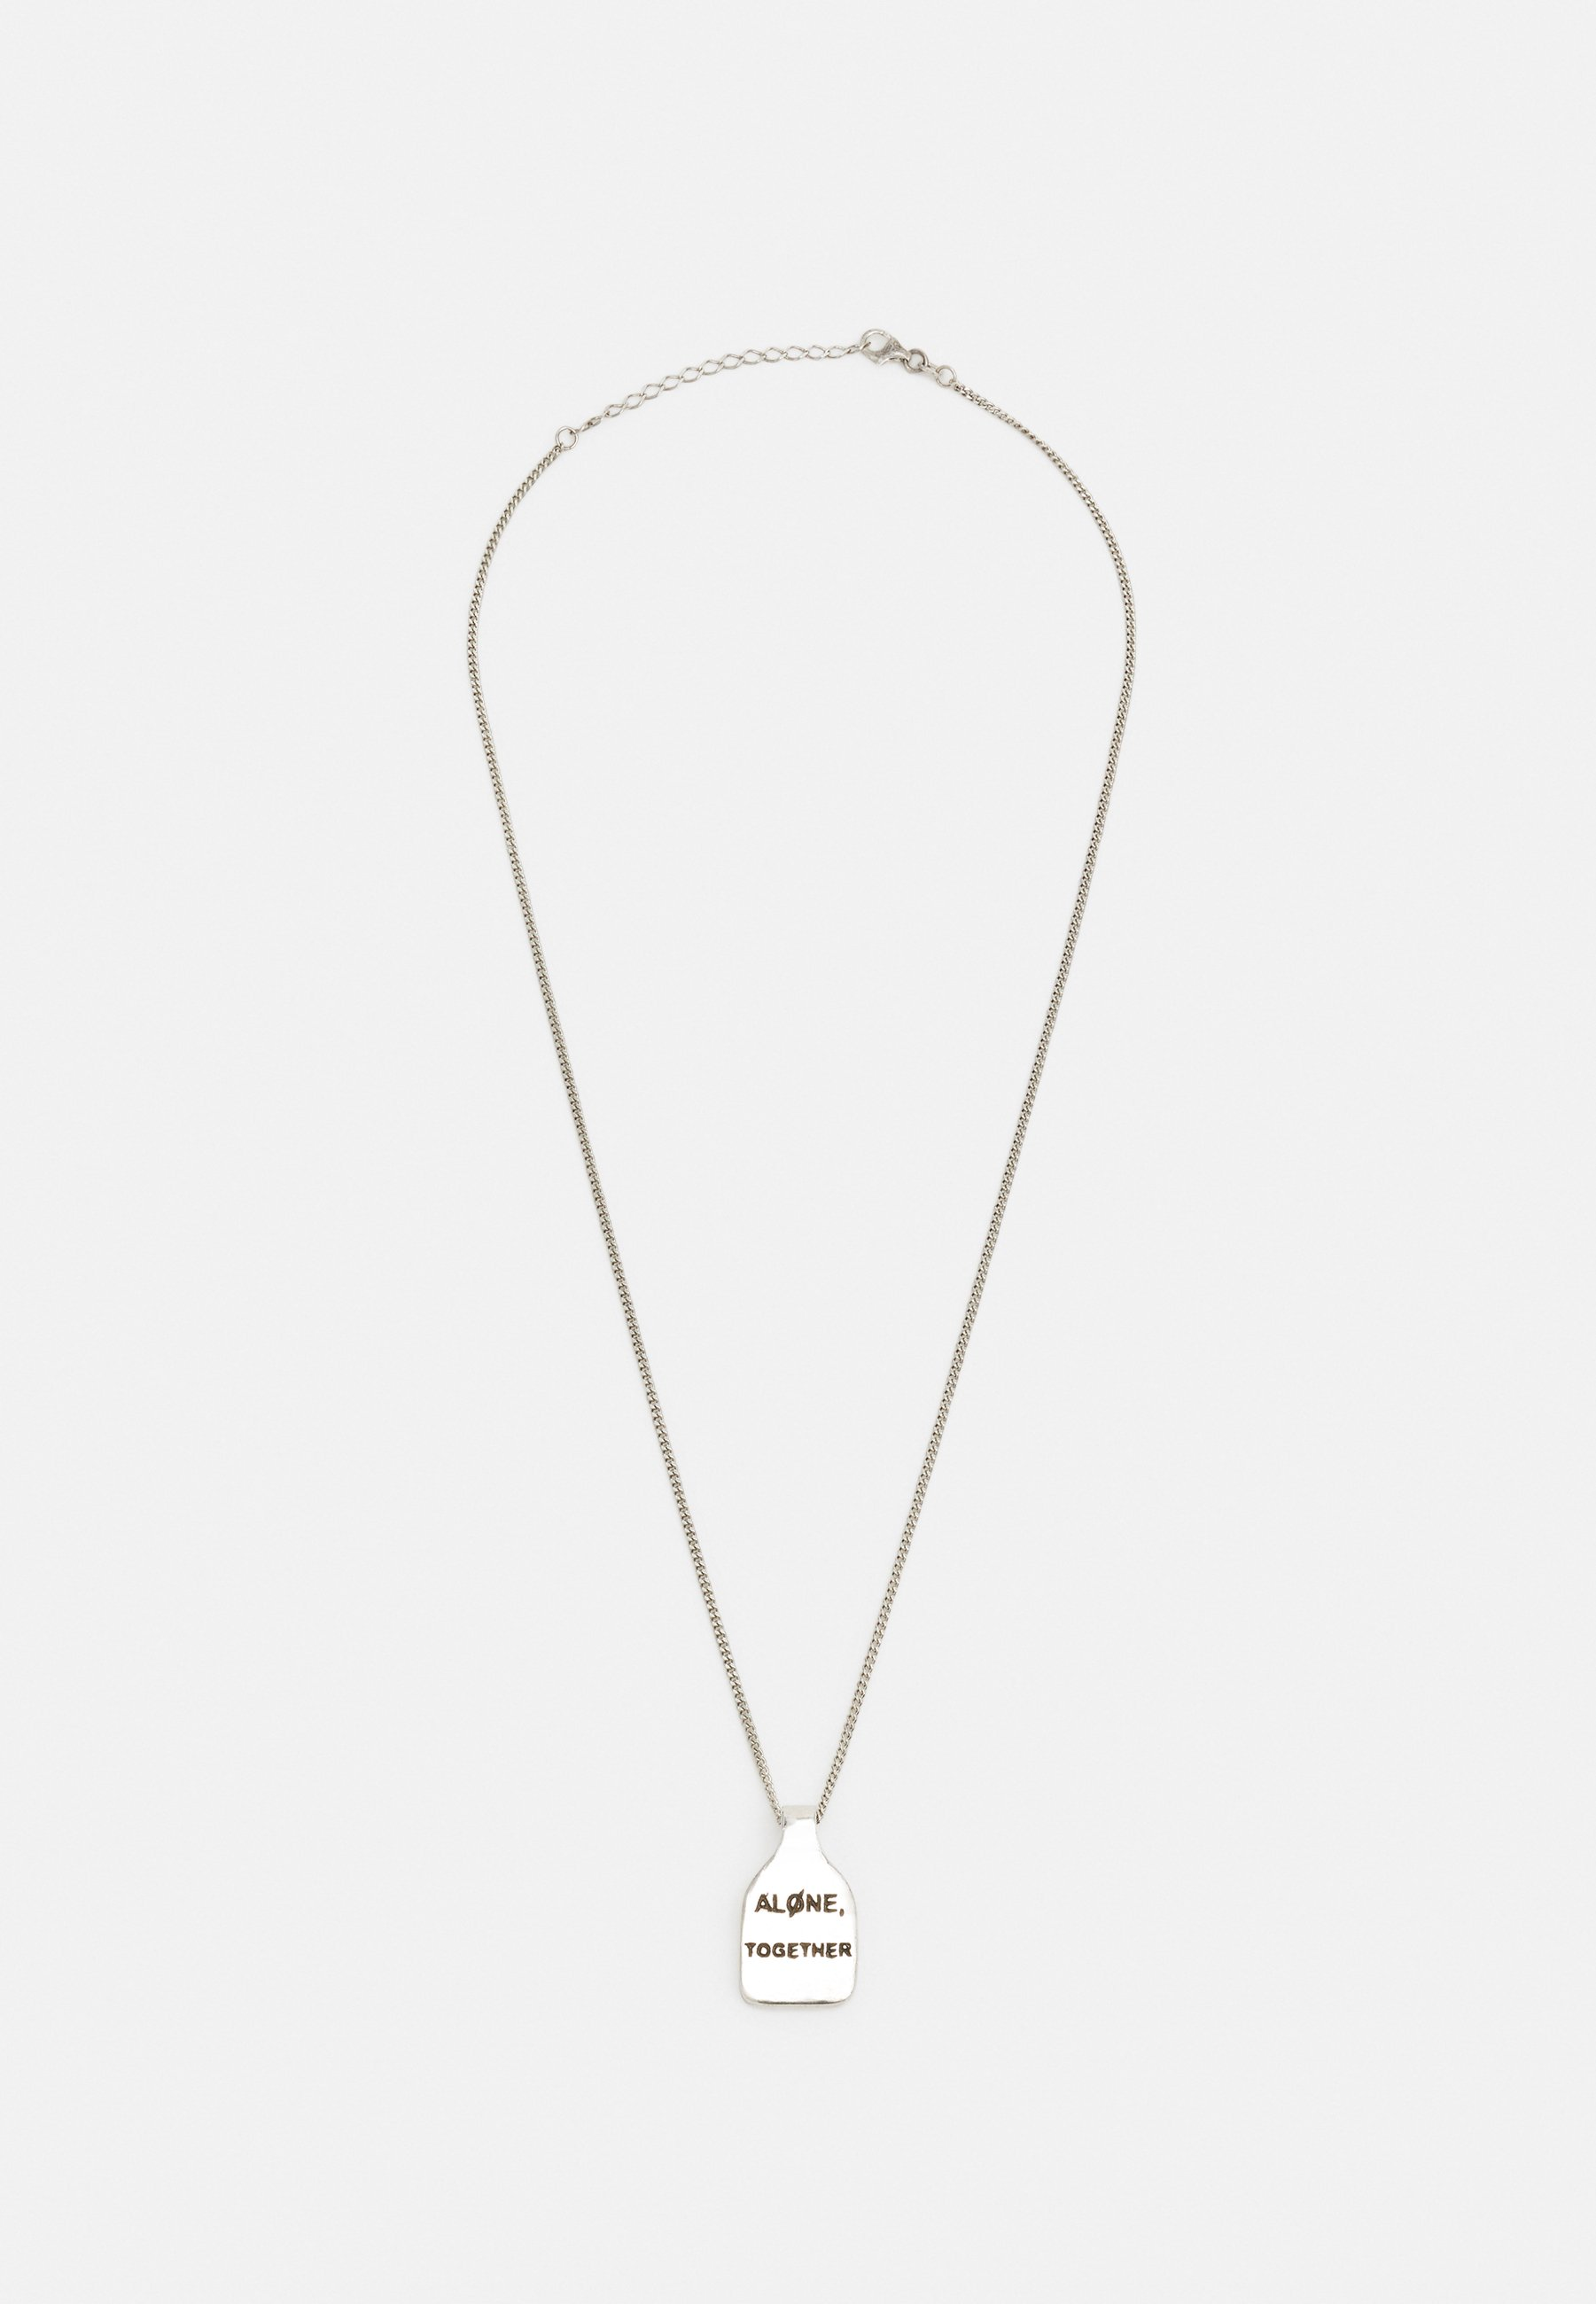 Homme ALONE TOGETHER UNISEX - Collier